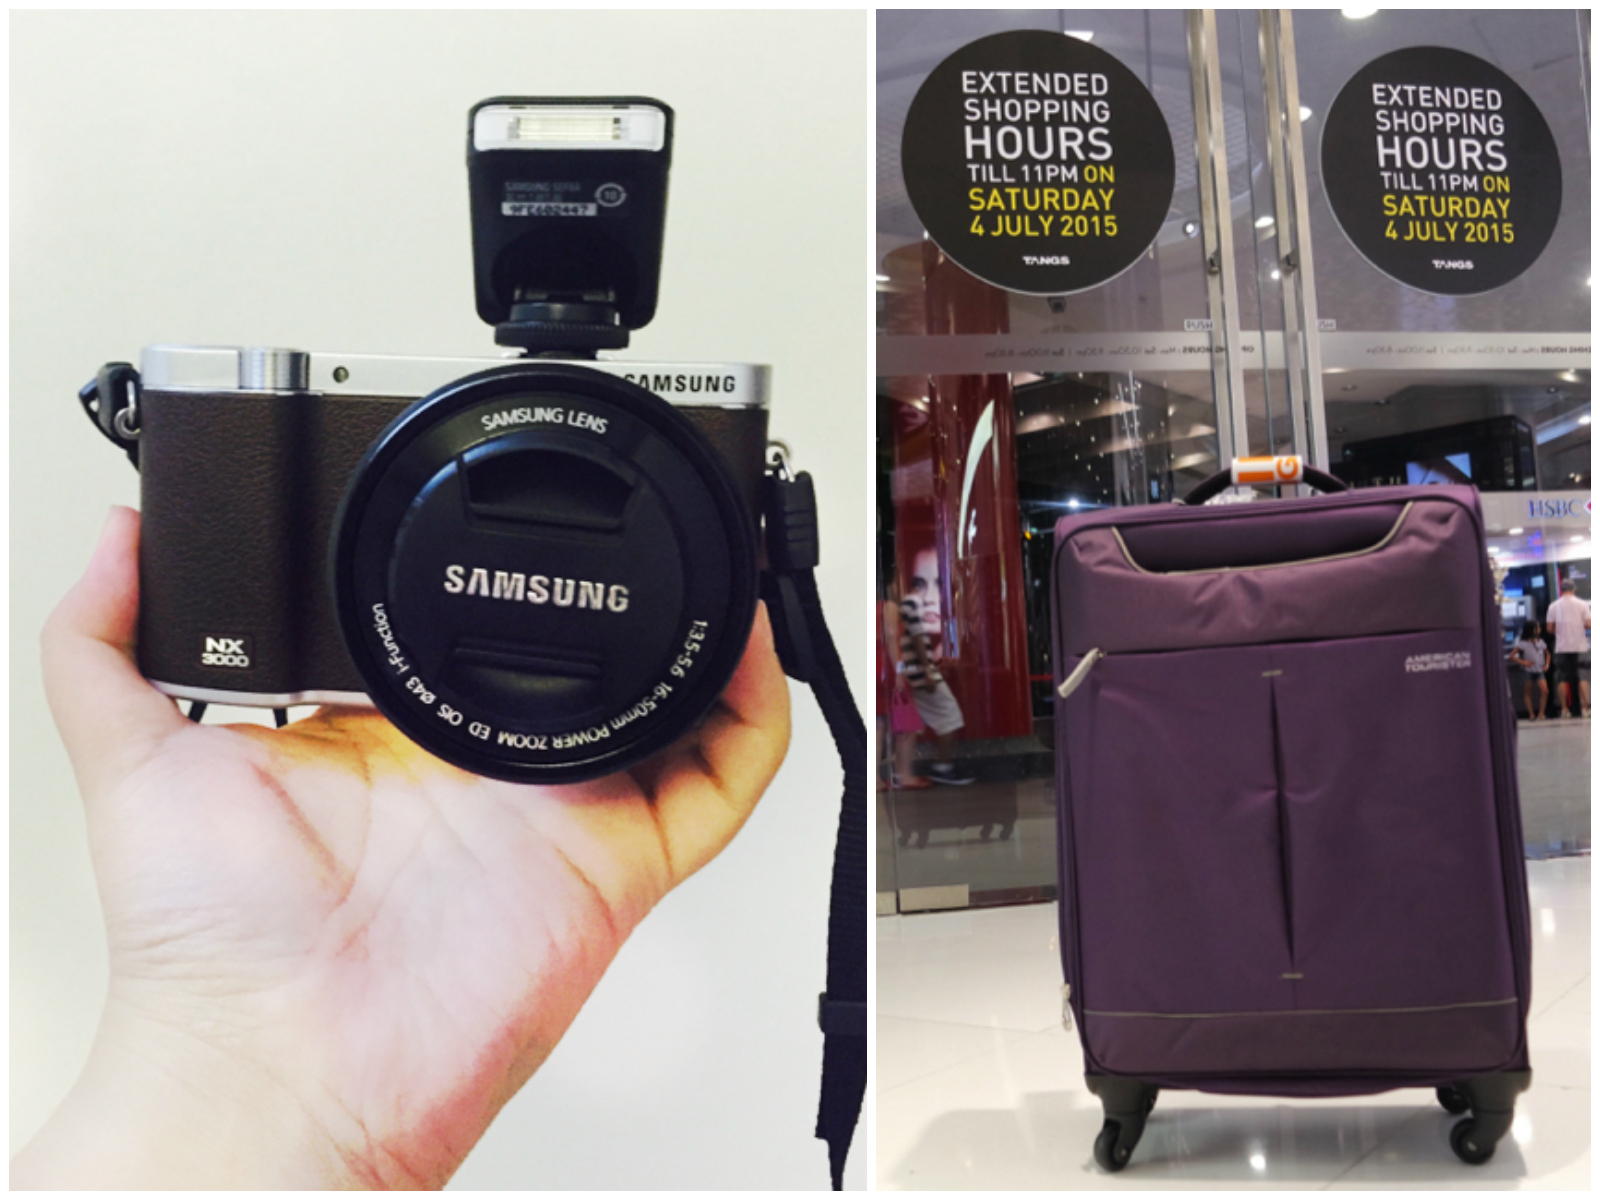 Samsung NX3000 and Luggage